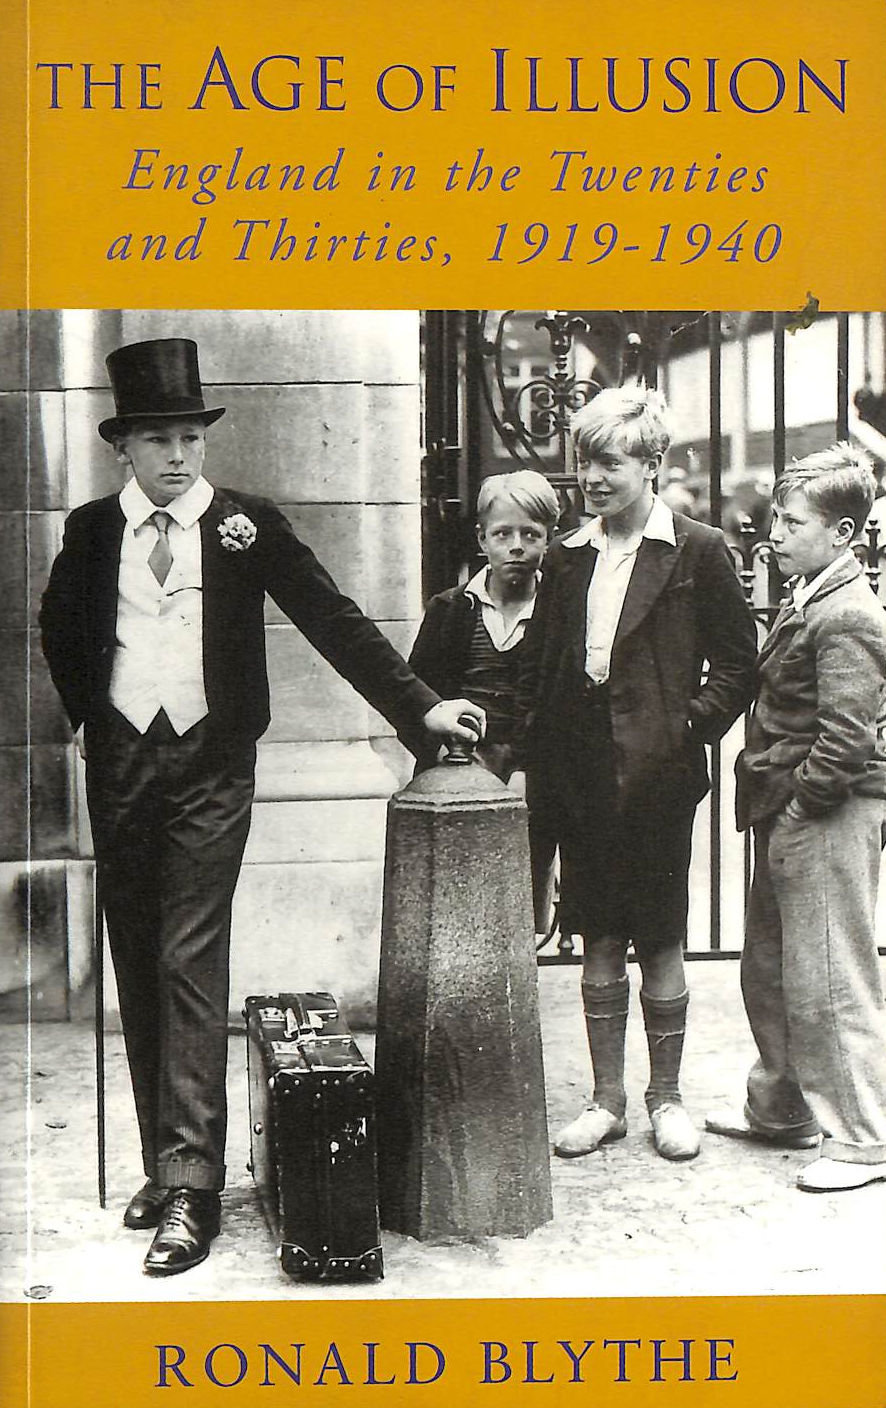 Image for The Age of Illusion - England in the Twenties 1920s and Thirties 1930s 1919-1940